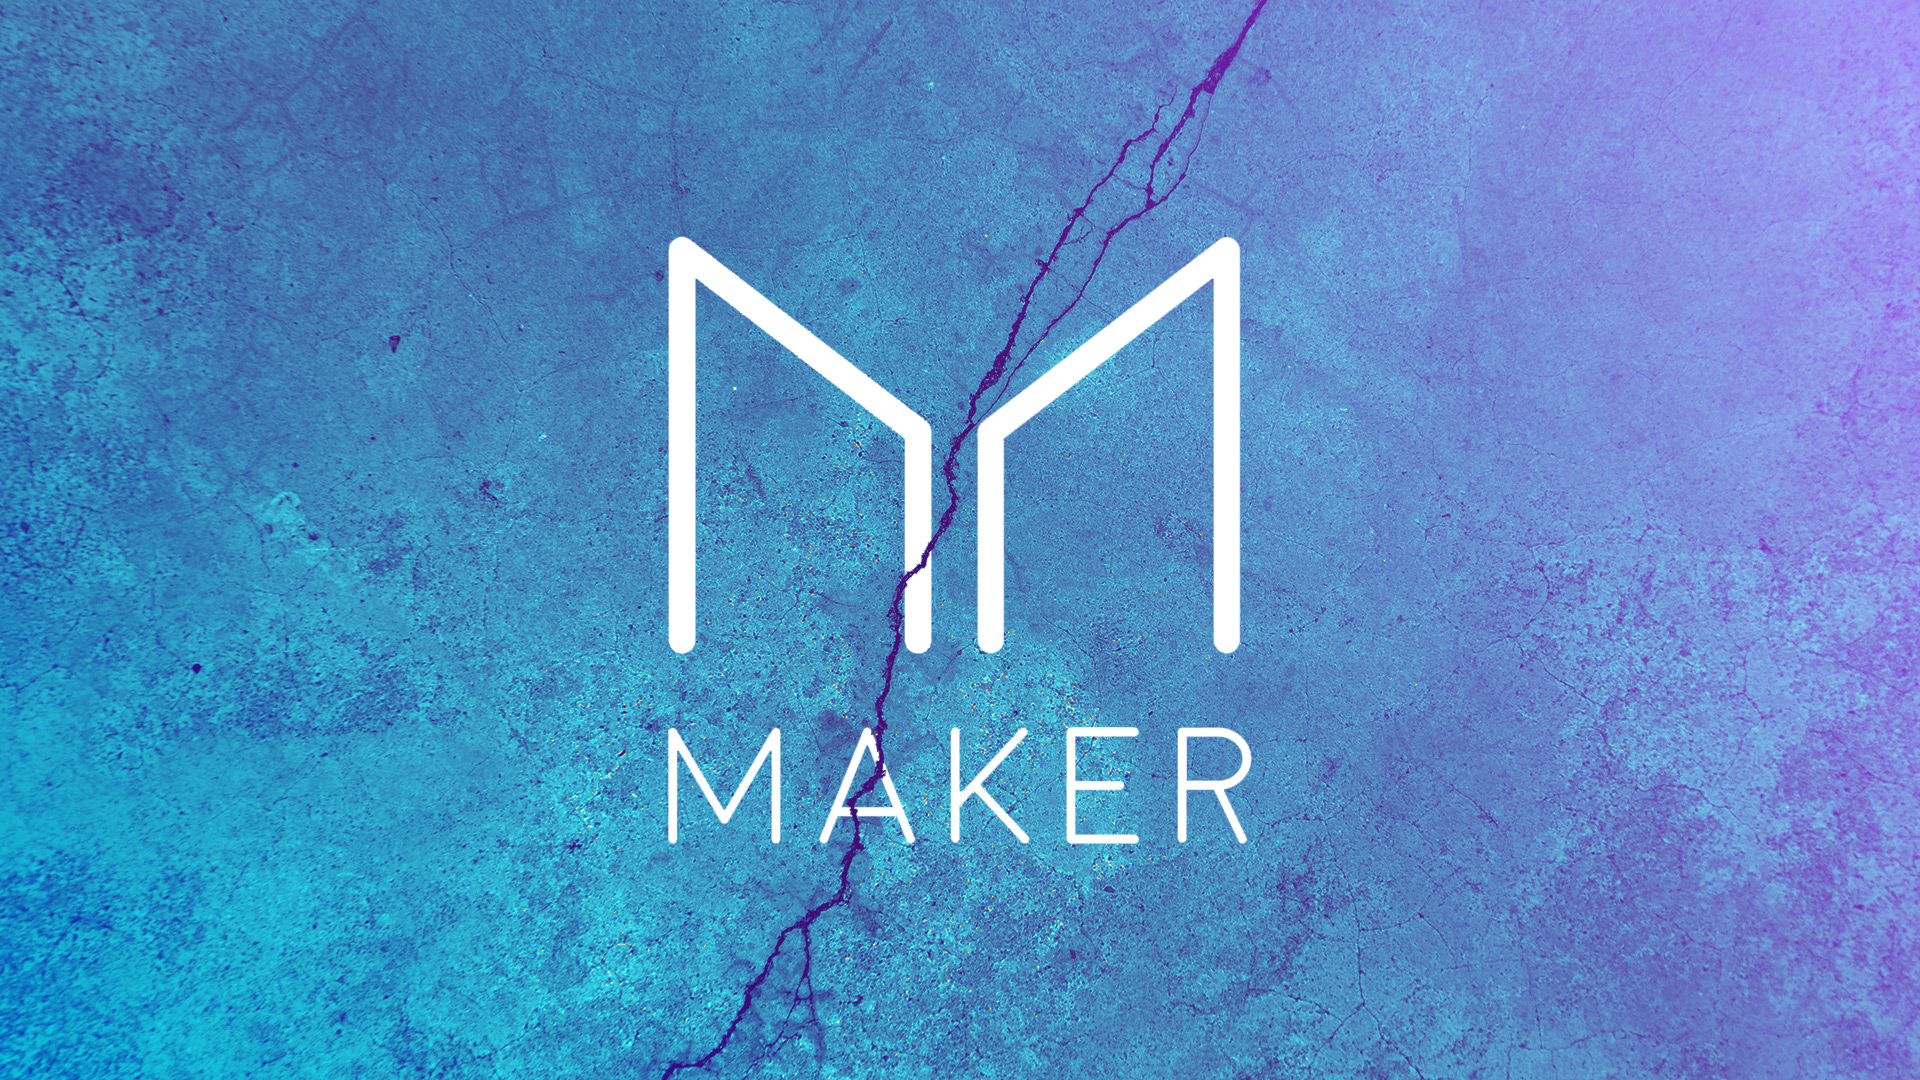 MakerDAO won't compensate Vaults affected by liquidations during the March market crash